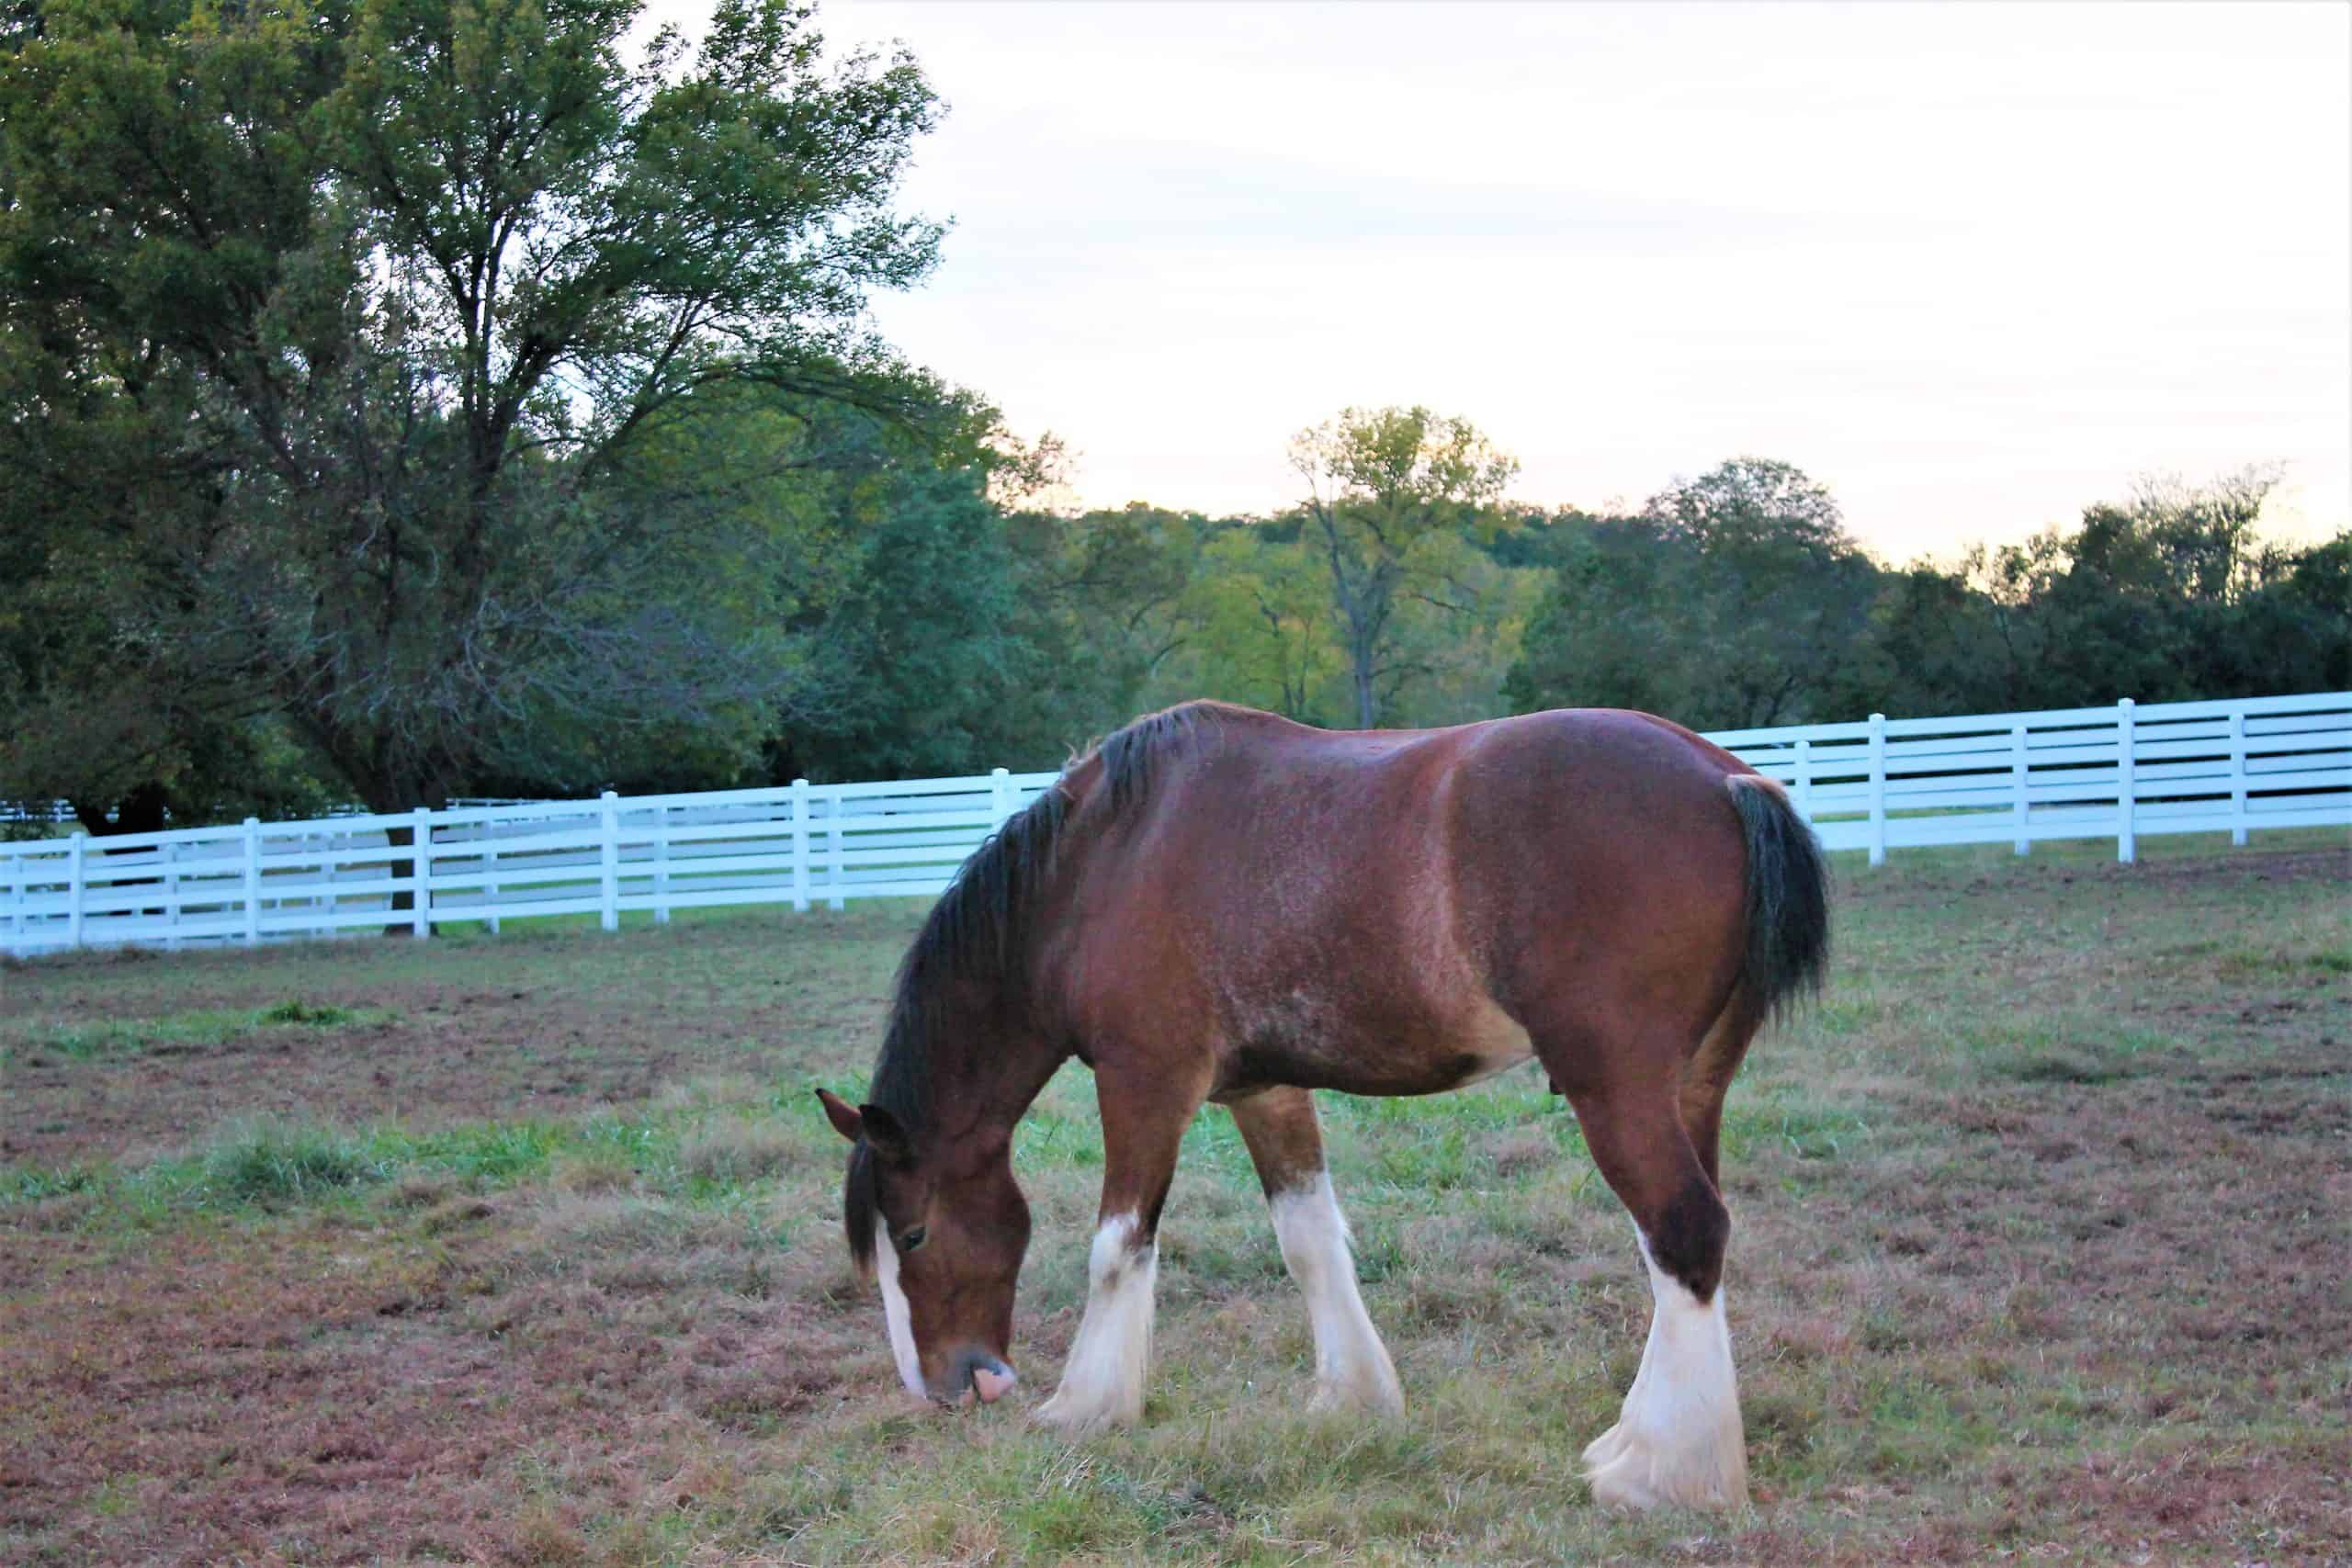 Images of Clydesdale horses in a paddock